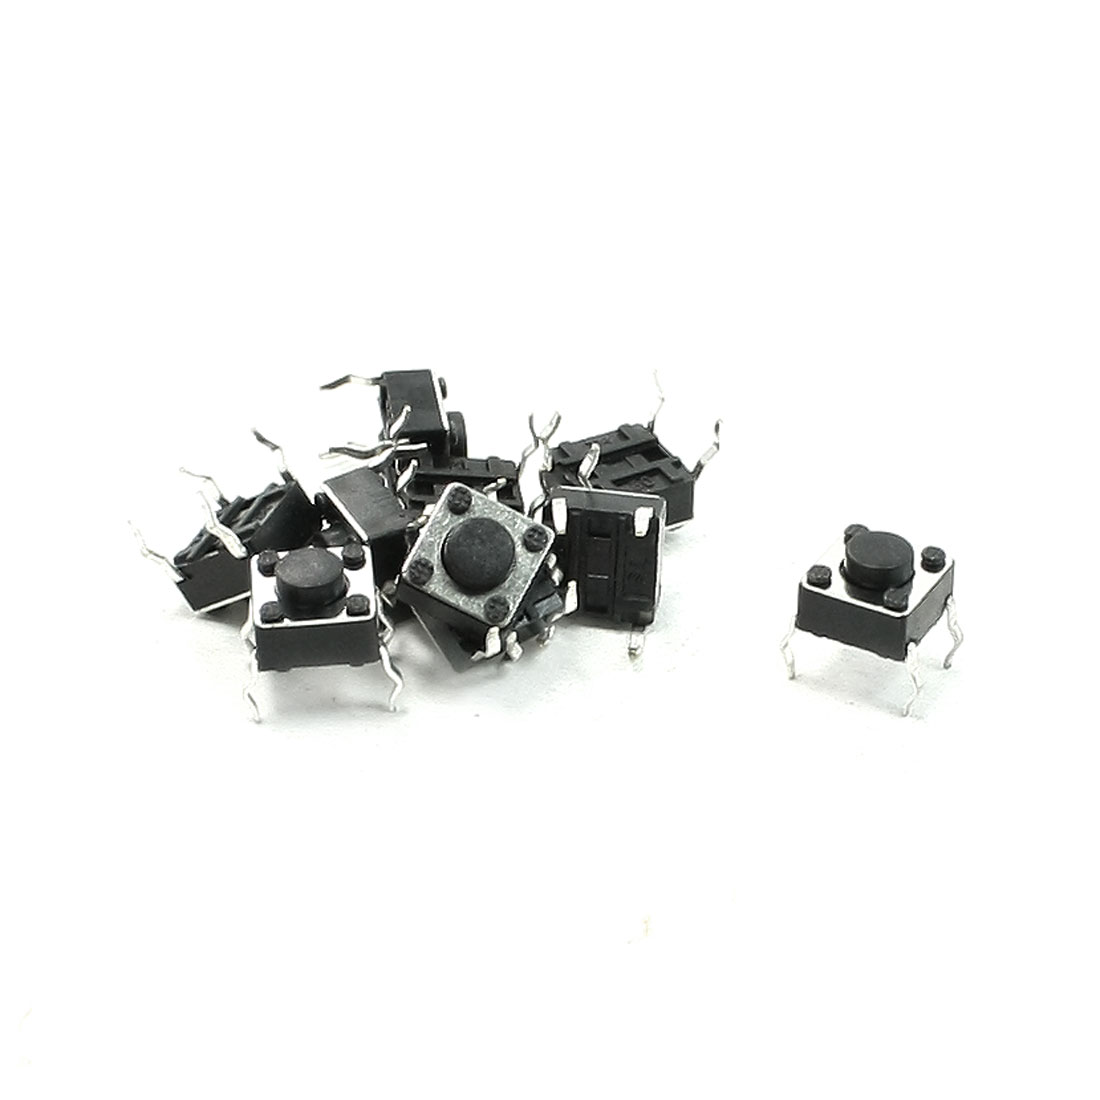 10 Pcs 6x6x4.3mm 4 Pins DIP PCB Momentary Tactile Tact Push Button Switch